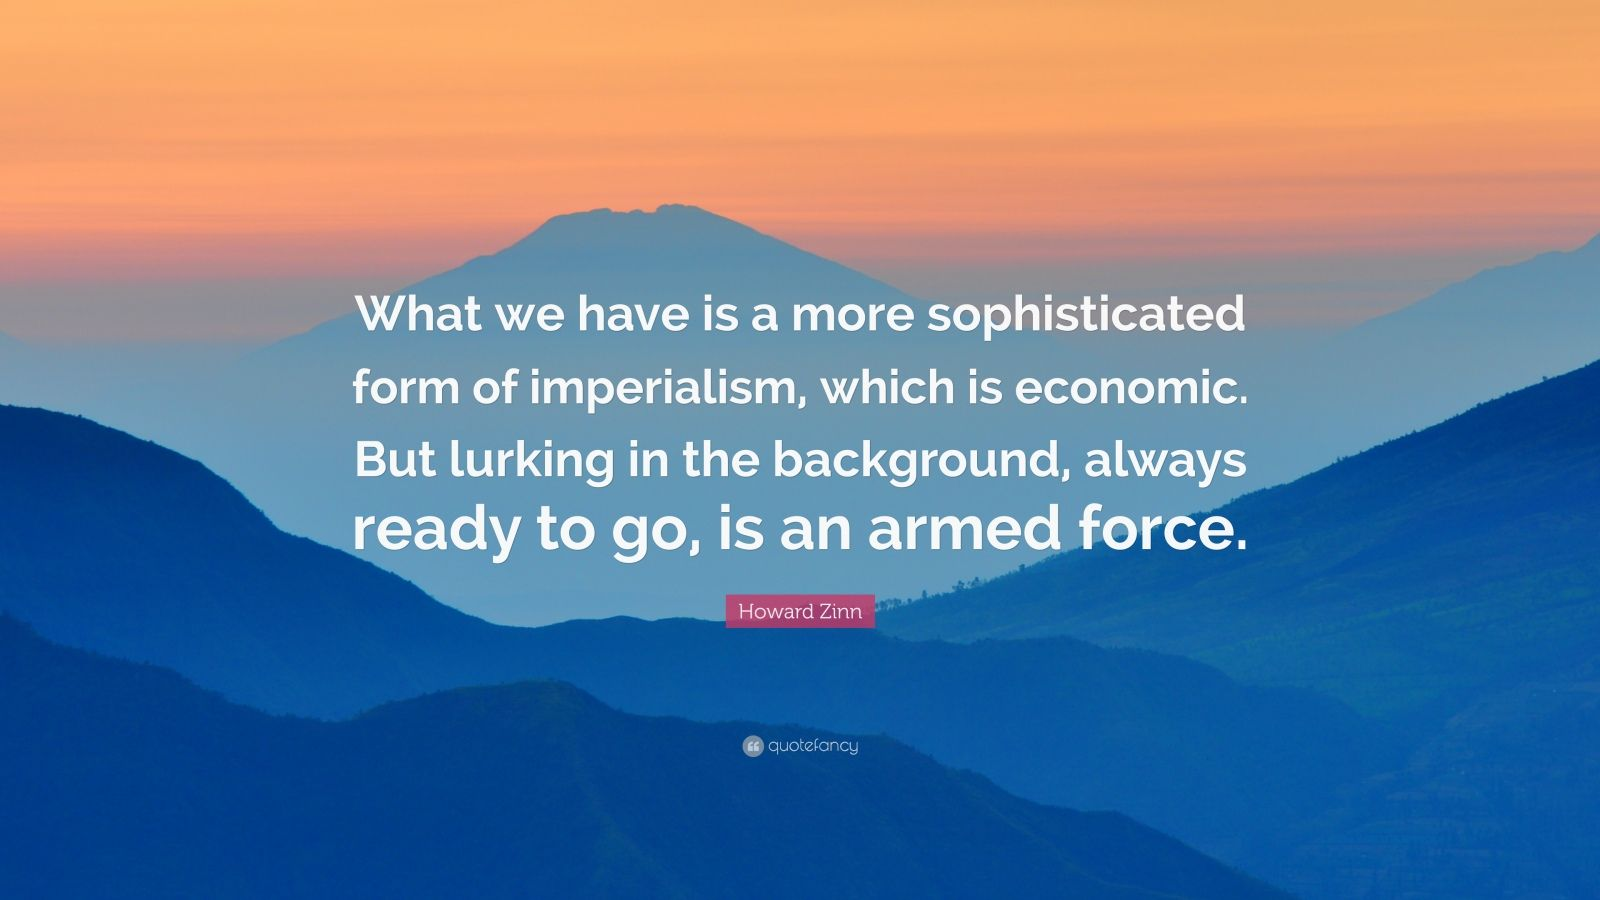 """Howard Zinn Quote: """"What we have is a more sophisticated form of imperialism, which is economic. But lurking in the background, always ready to go, is an armed force."""""""